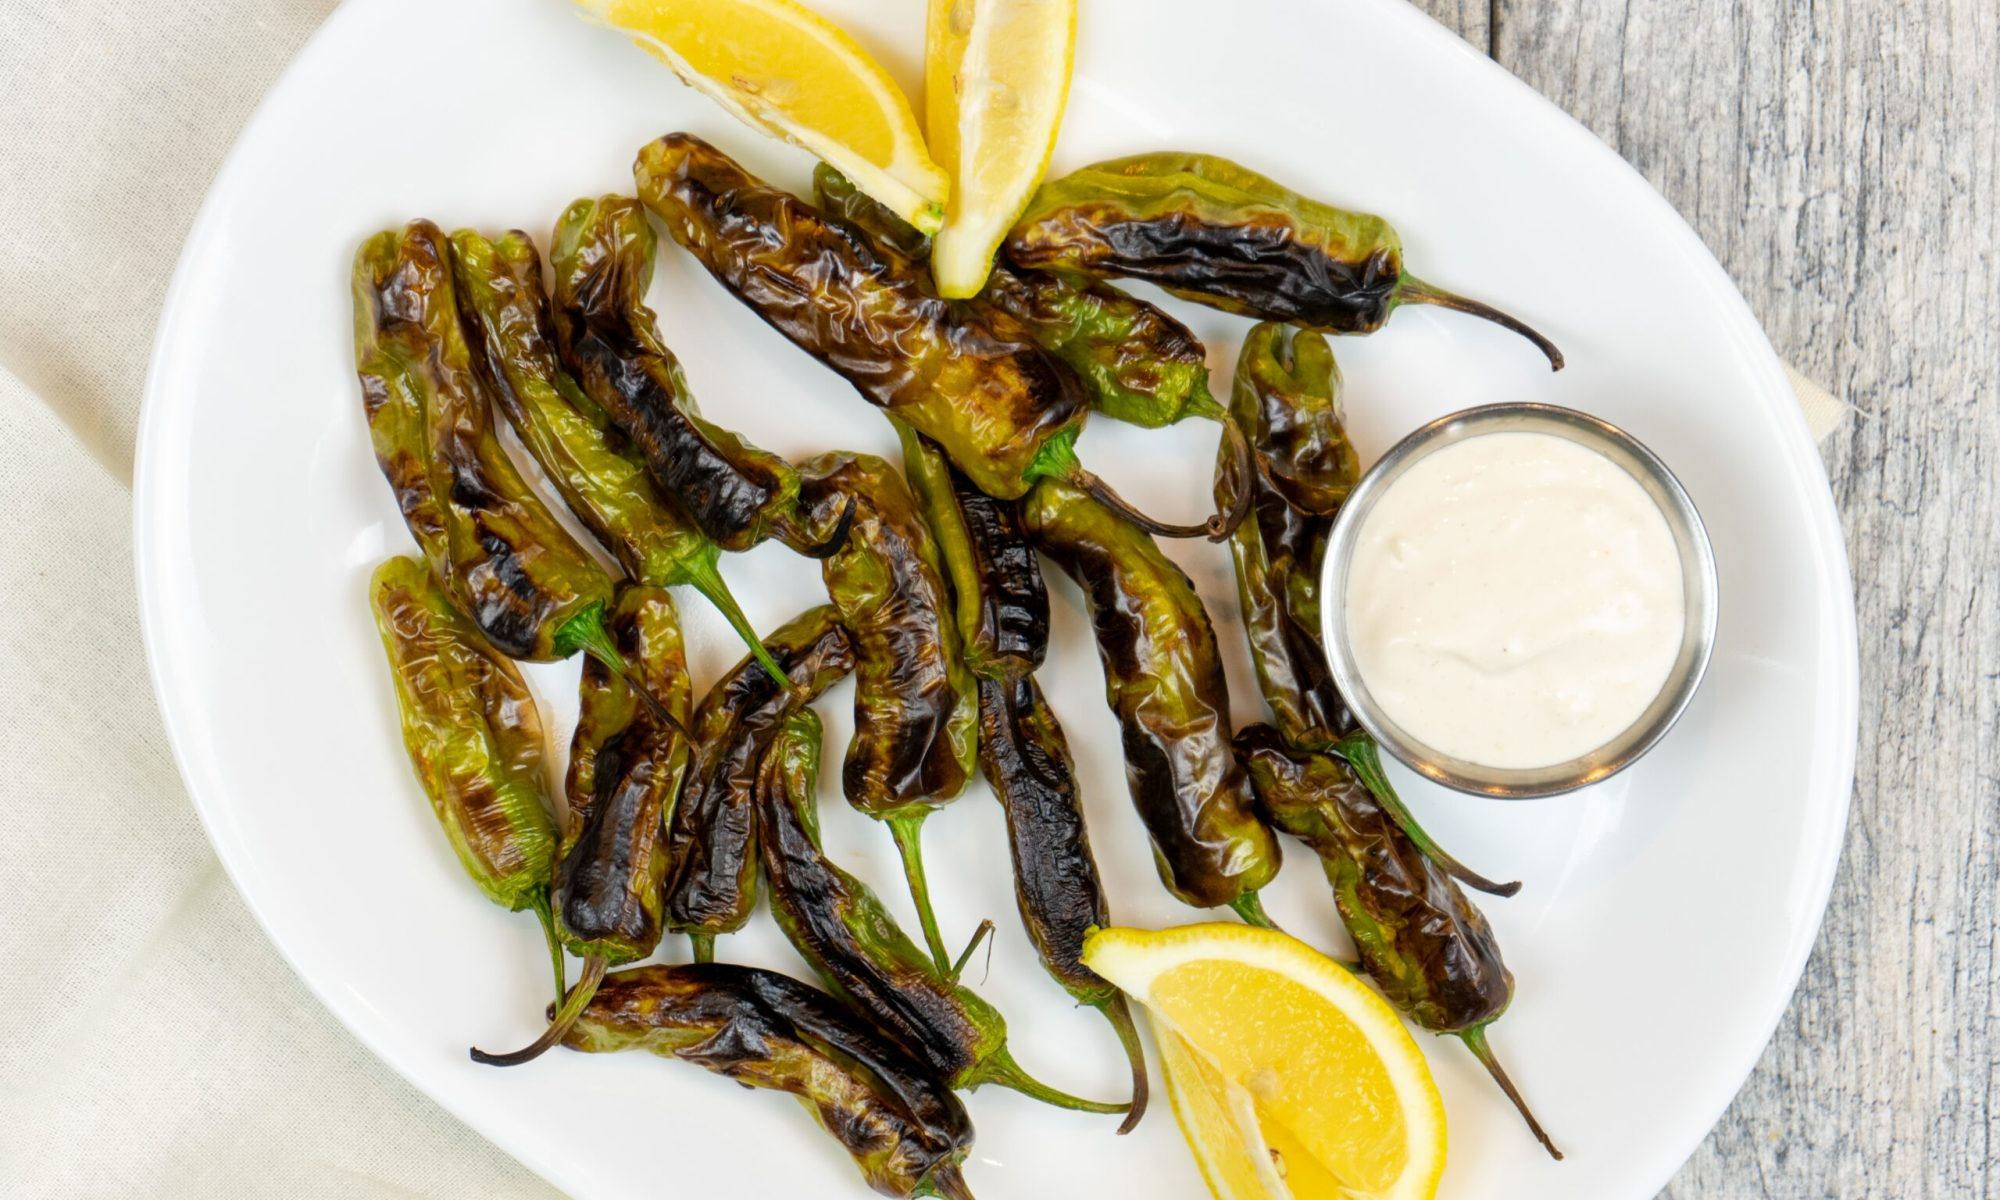 Blistered Shishito Peppers with Garlic Aoli Dipping Sauce - The Vegan Rhino